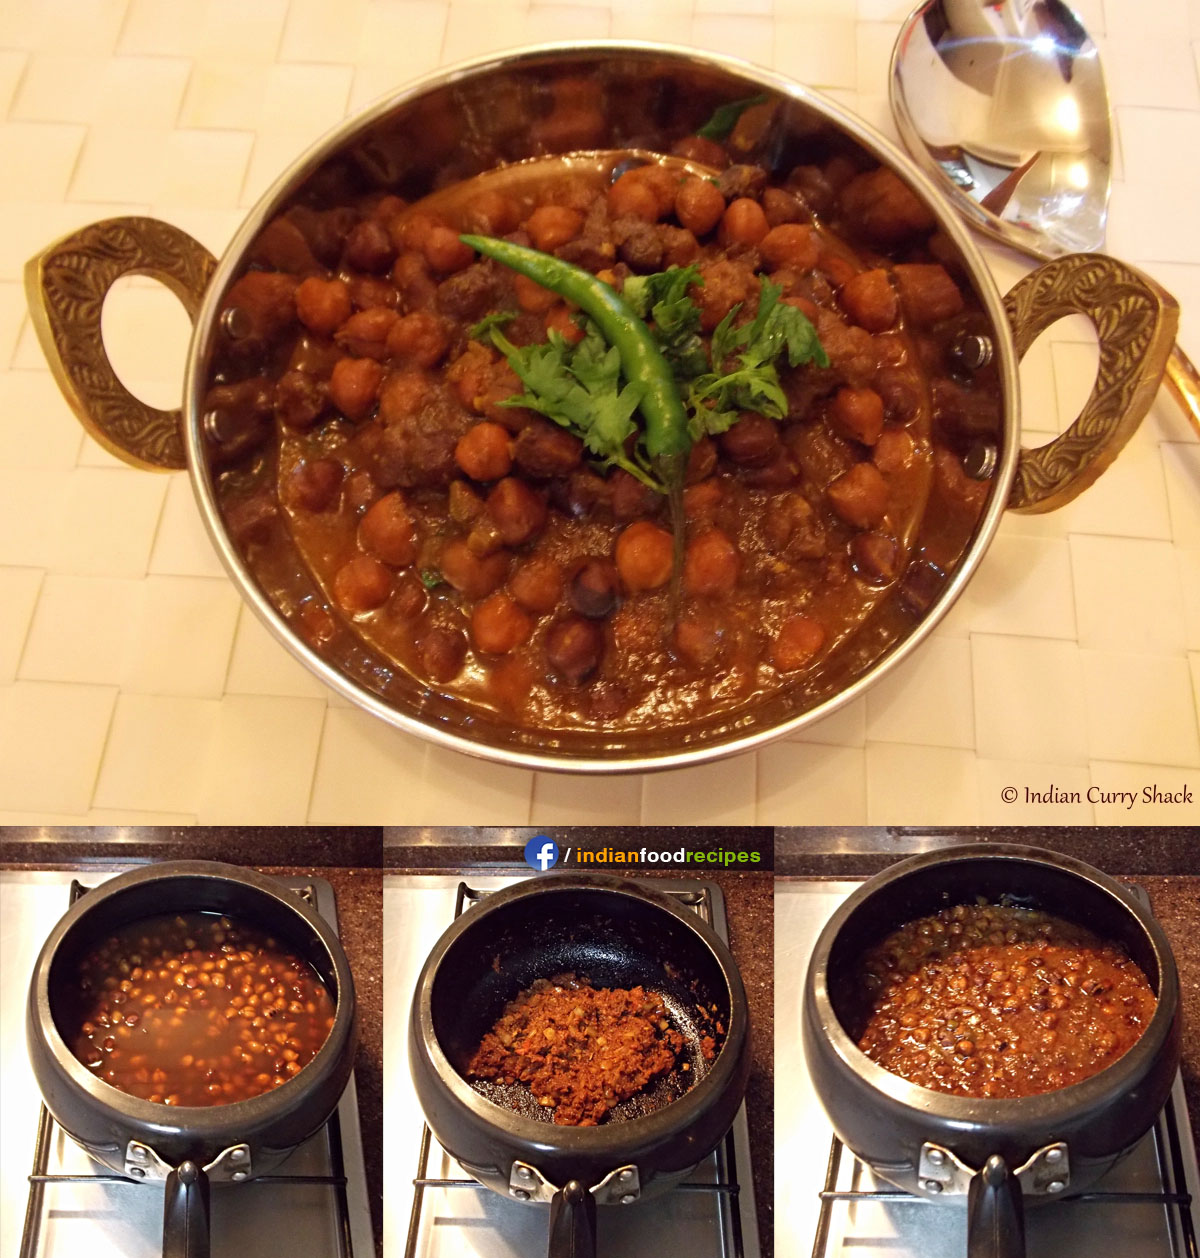 Ghugni (Kala Chana / Black Chickpeas) recipe step by step